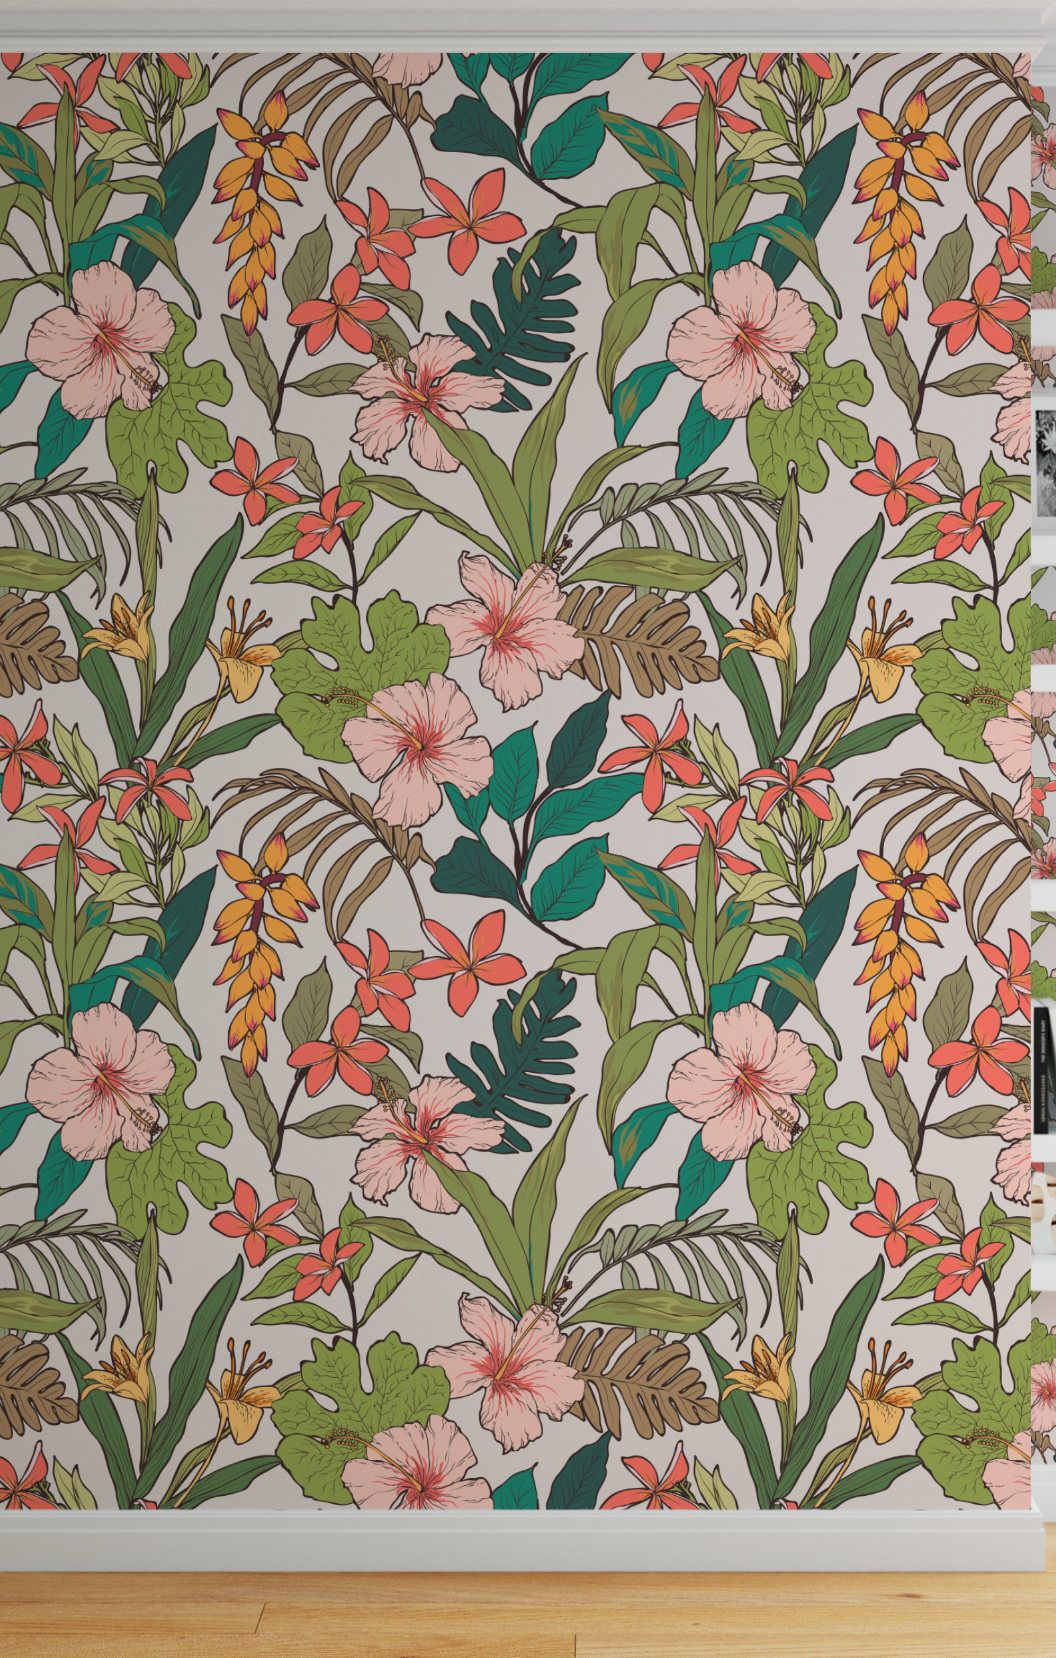 Floral Tropical Wallpaper Peel And Stick Wallpaper Banana Etsy Tropical Wallpaper Leaf Wallpaper Banana Leaf Wallpaper